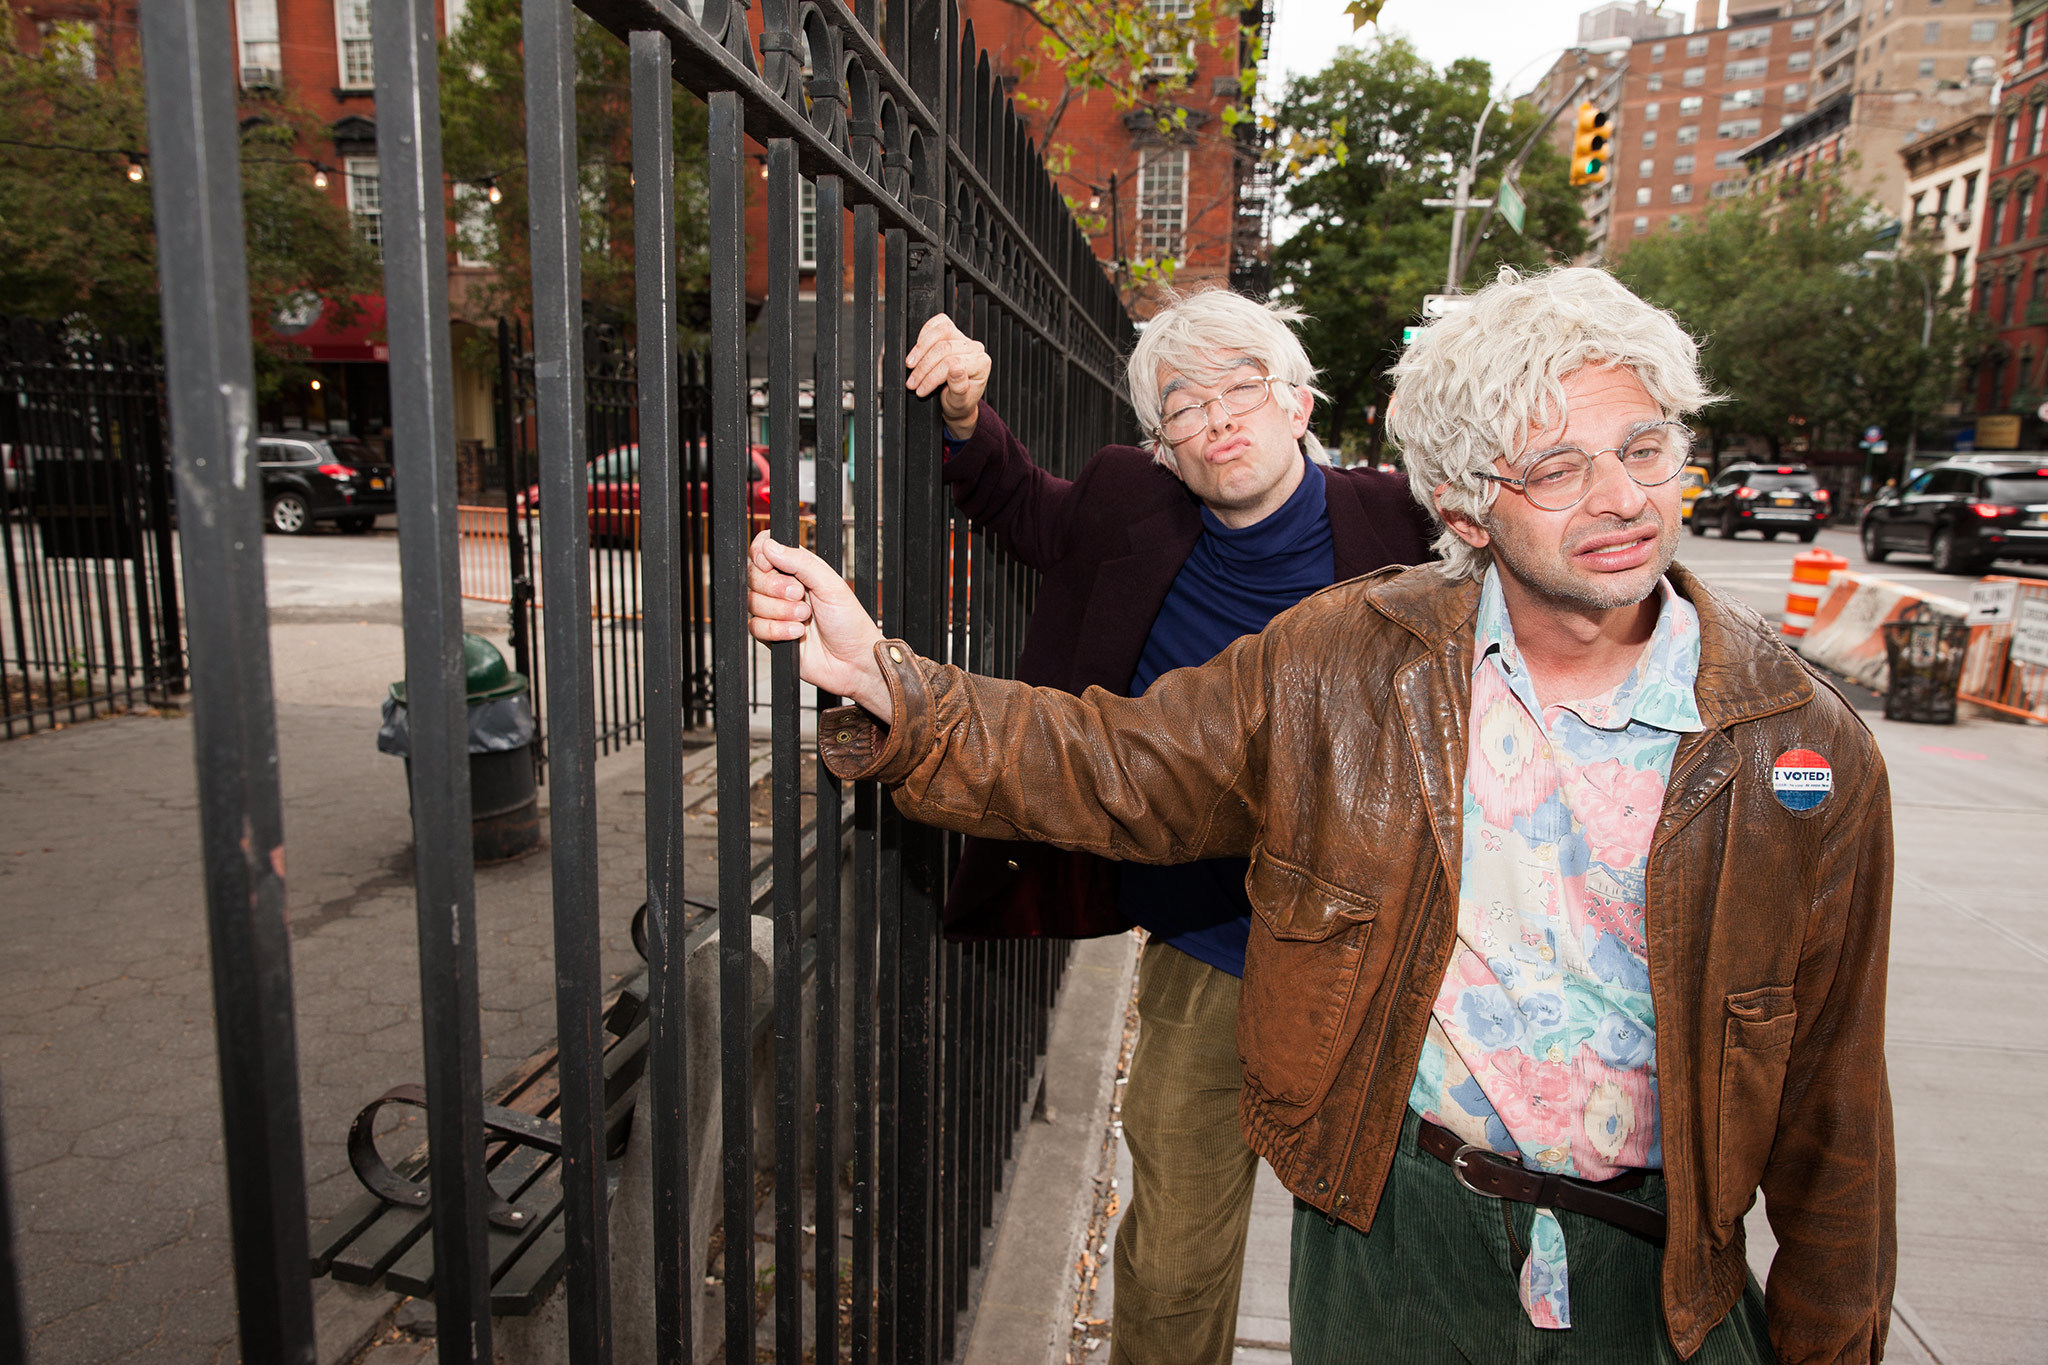 George St. Geegland (John Mulaney) and Gil Faizon (Nick Kroll)